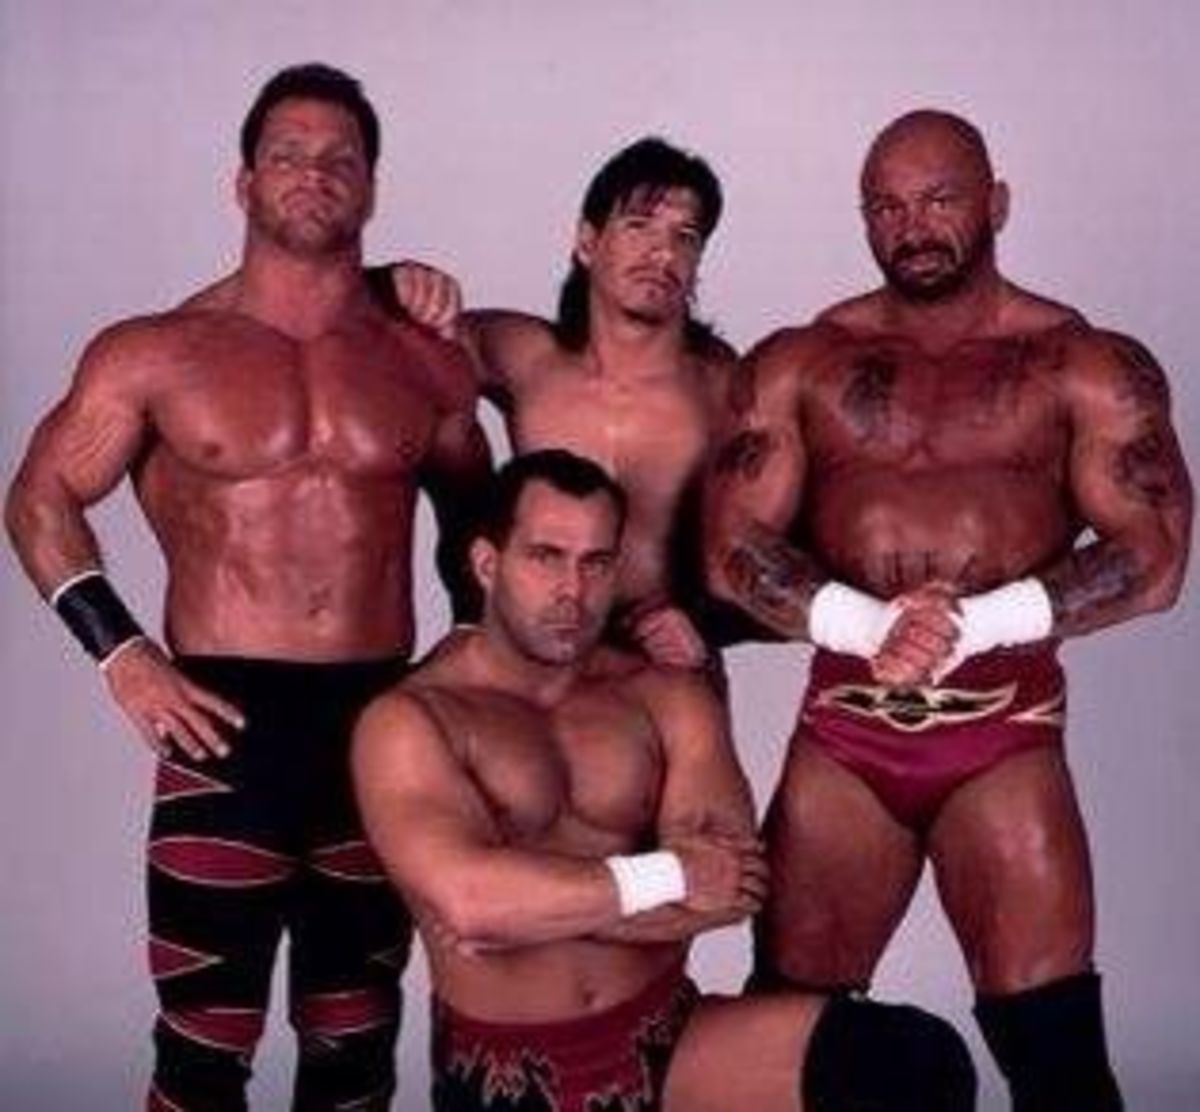 WCW had a lot of talent even without the WWF imports.